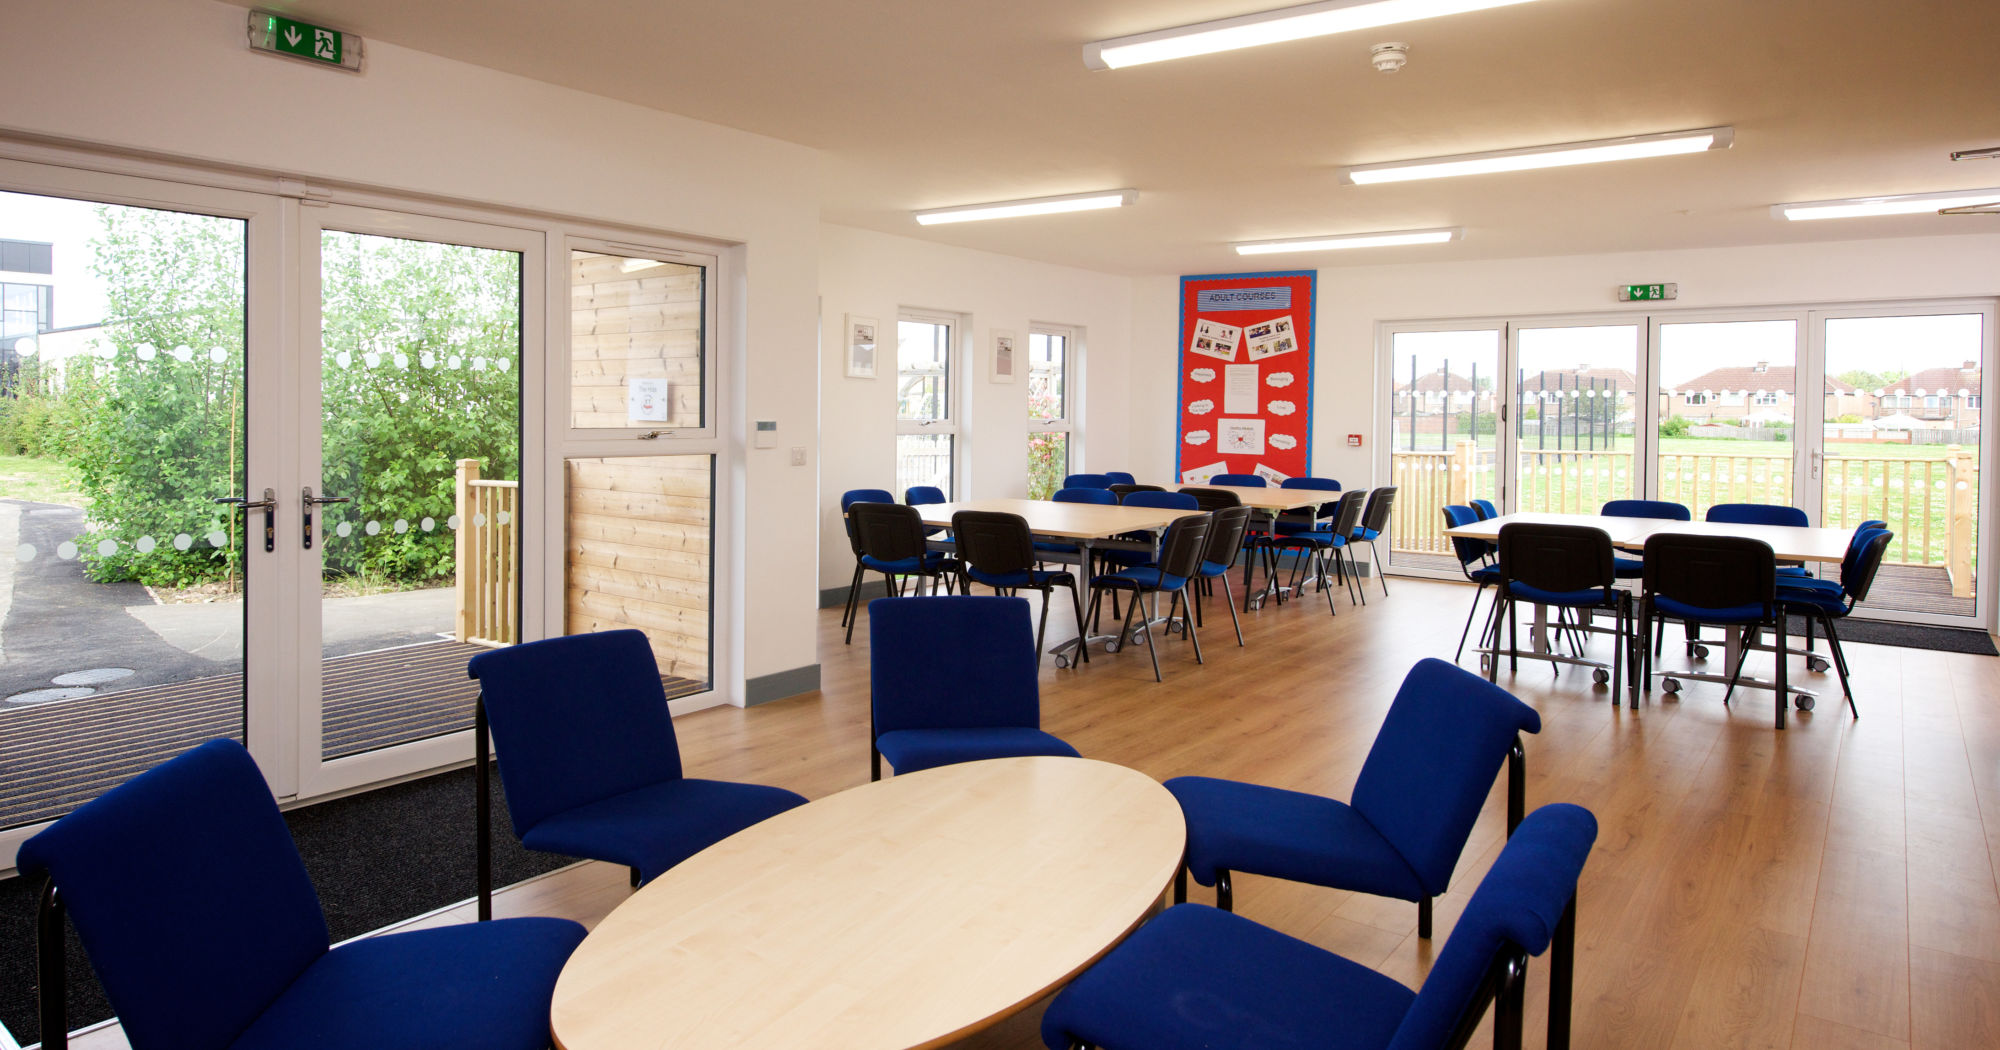 Classroom Design Considerations ~ Creating the perfect learning environment what are